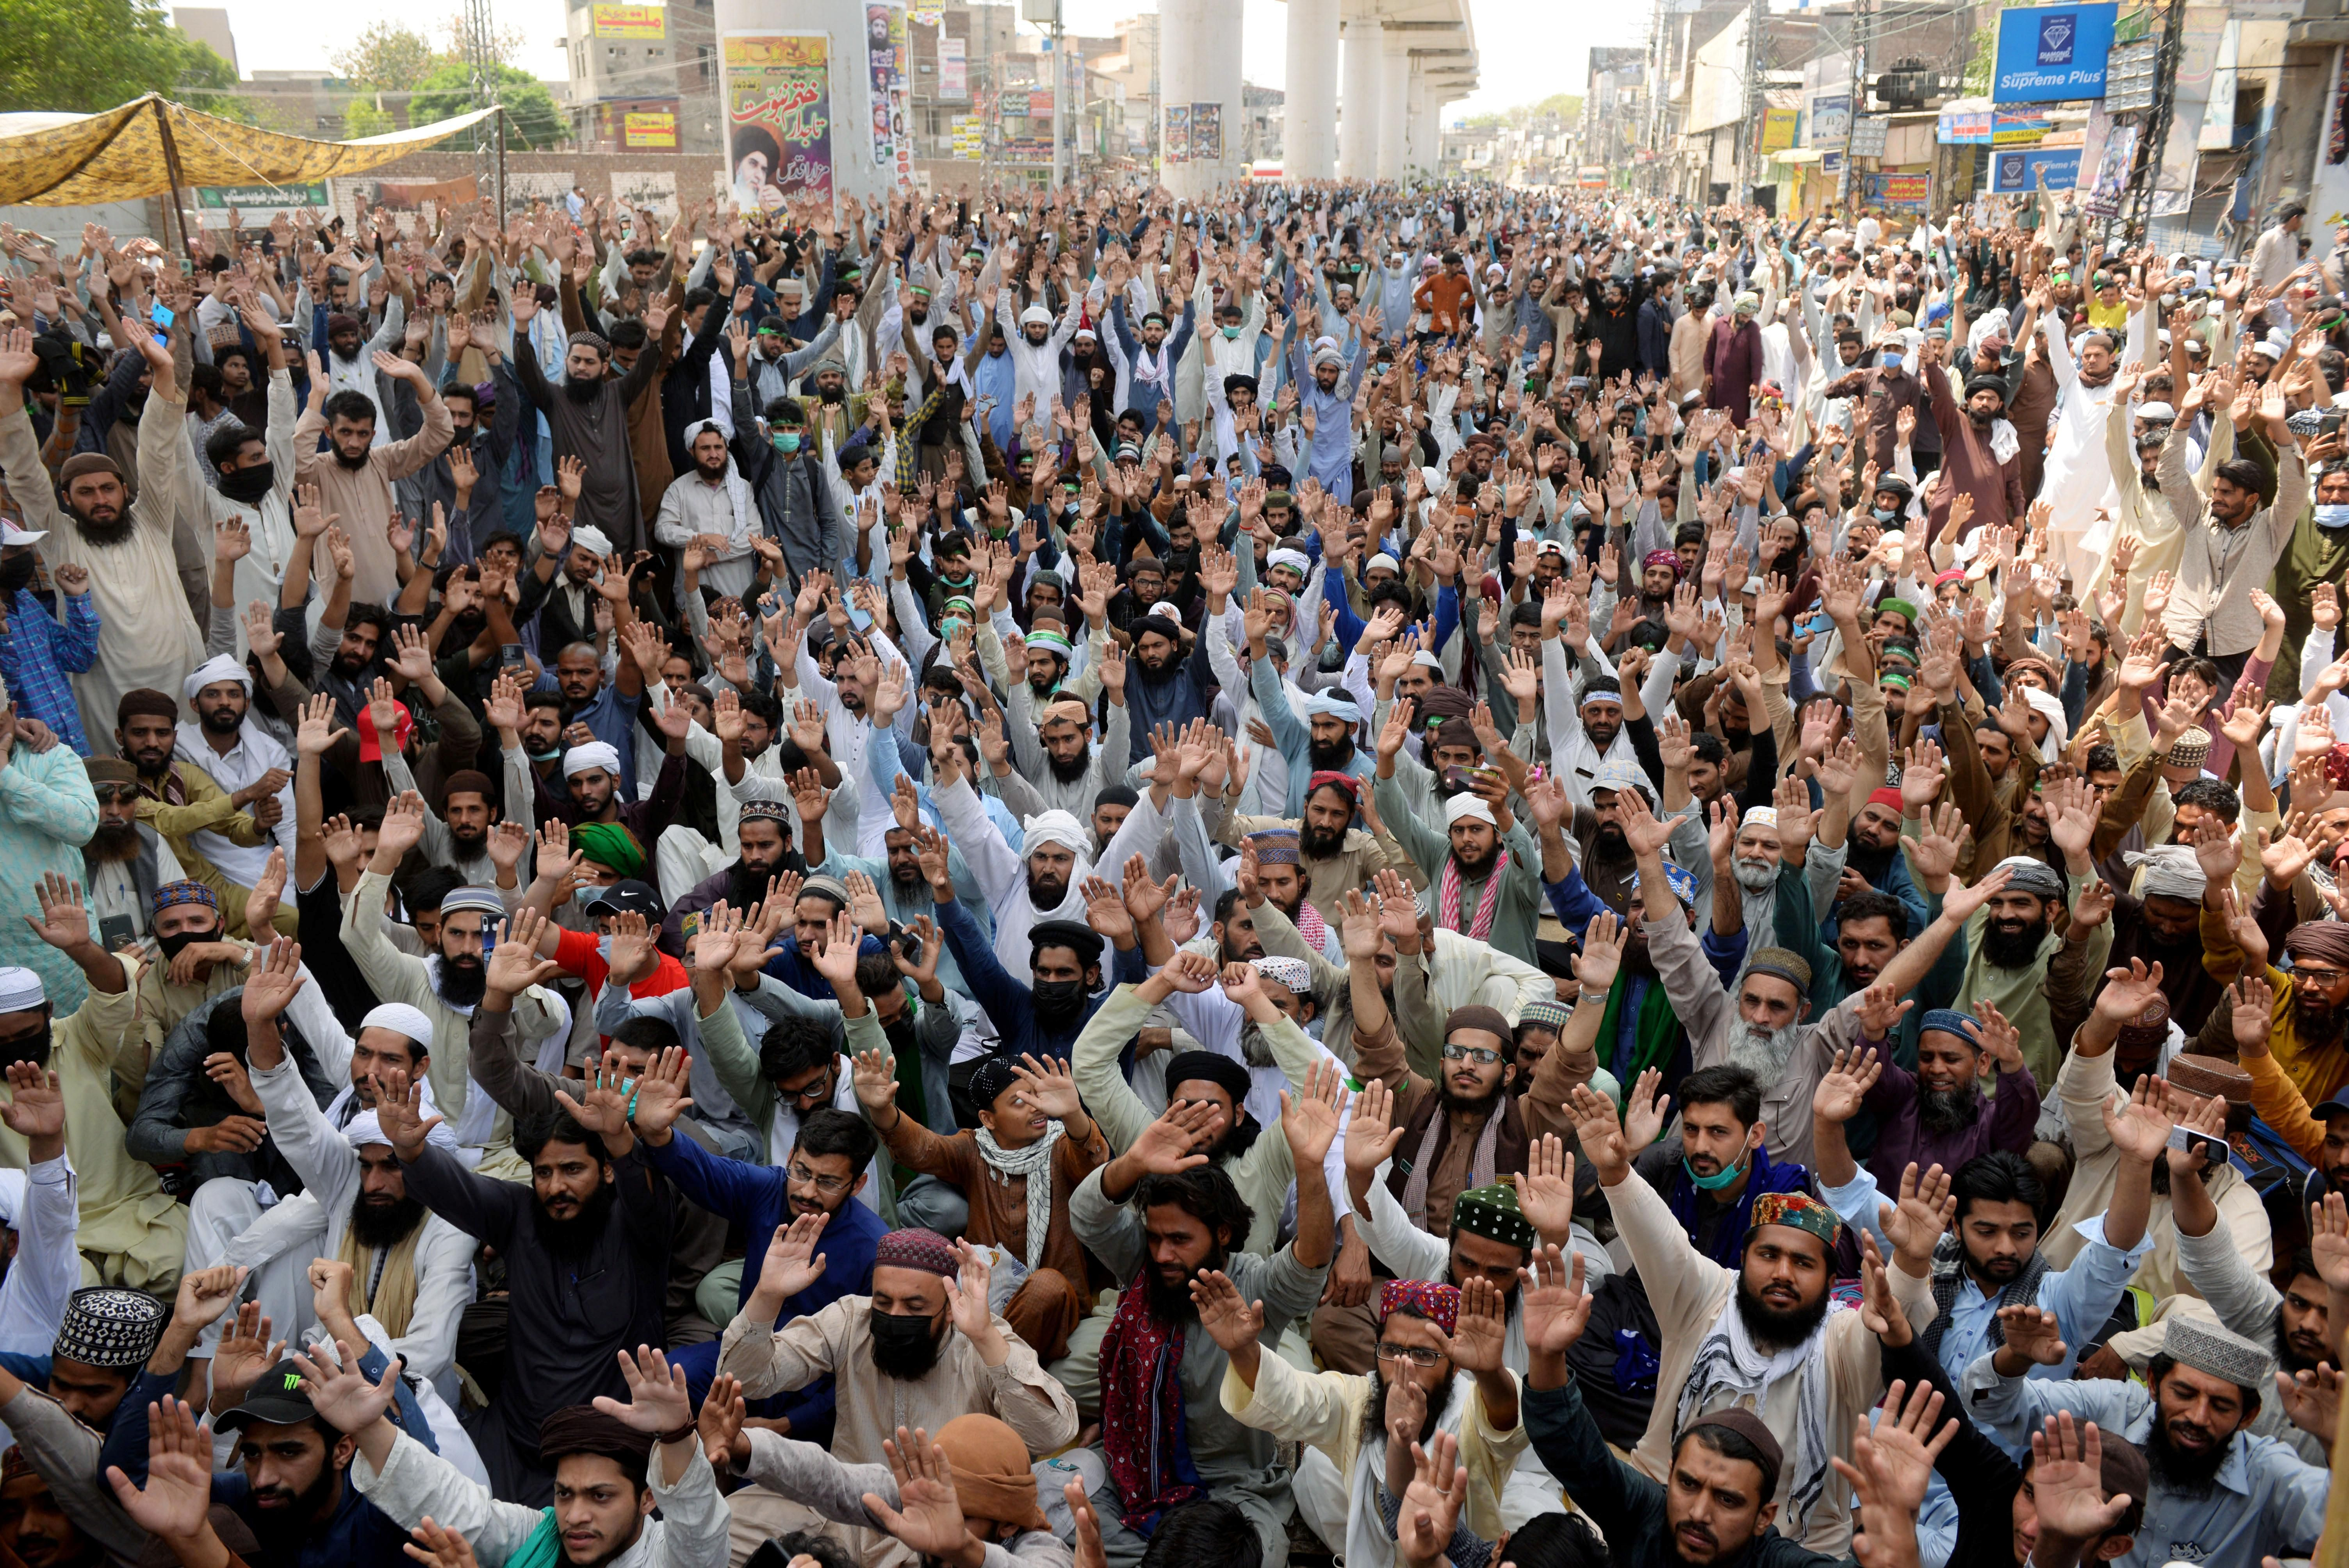 Supporters of the banned Islamist political party Tehrik-e-Labaik Pakistan (TLP) chant slogans during a protest in Lahore, Pakistan April 19, 2021.